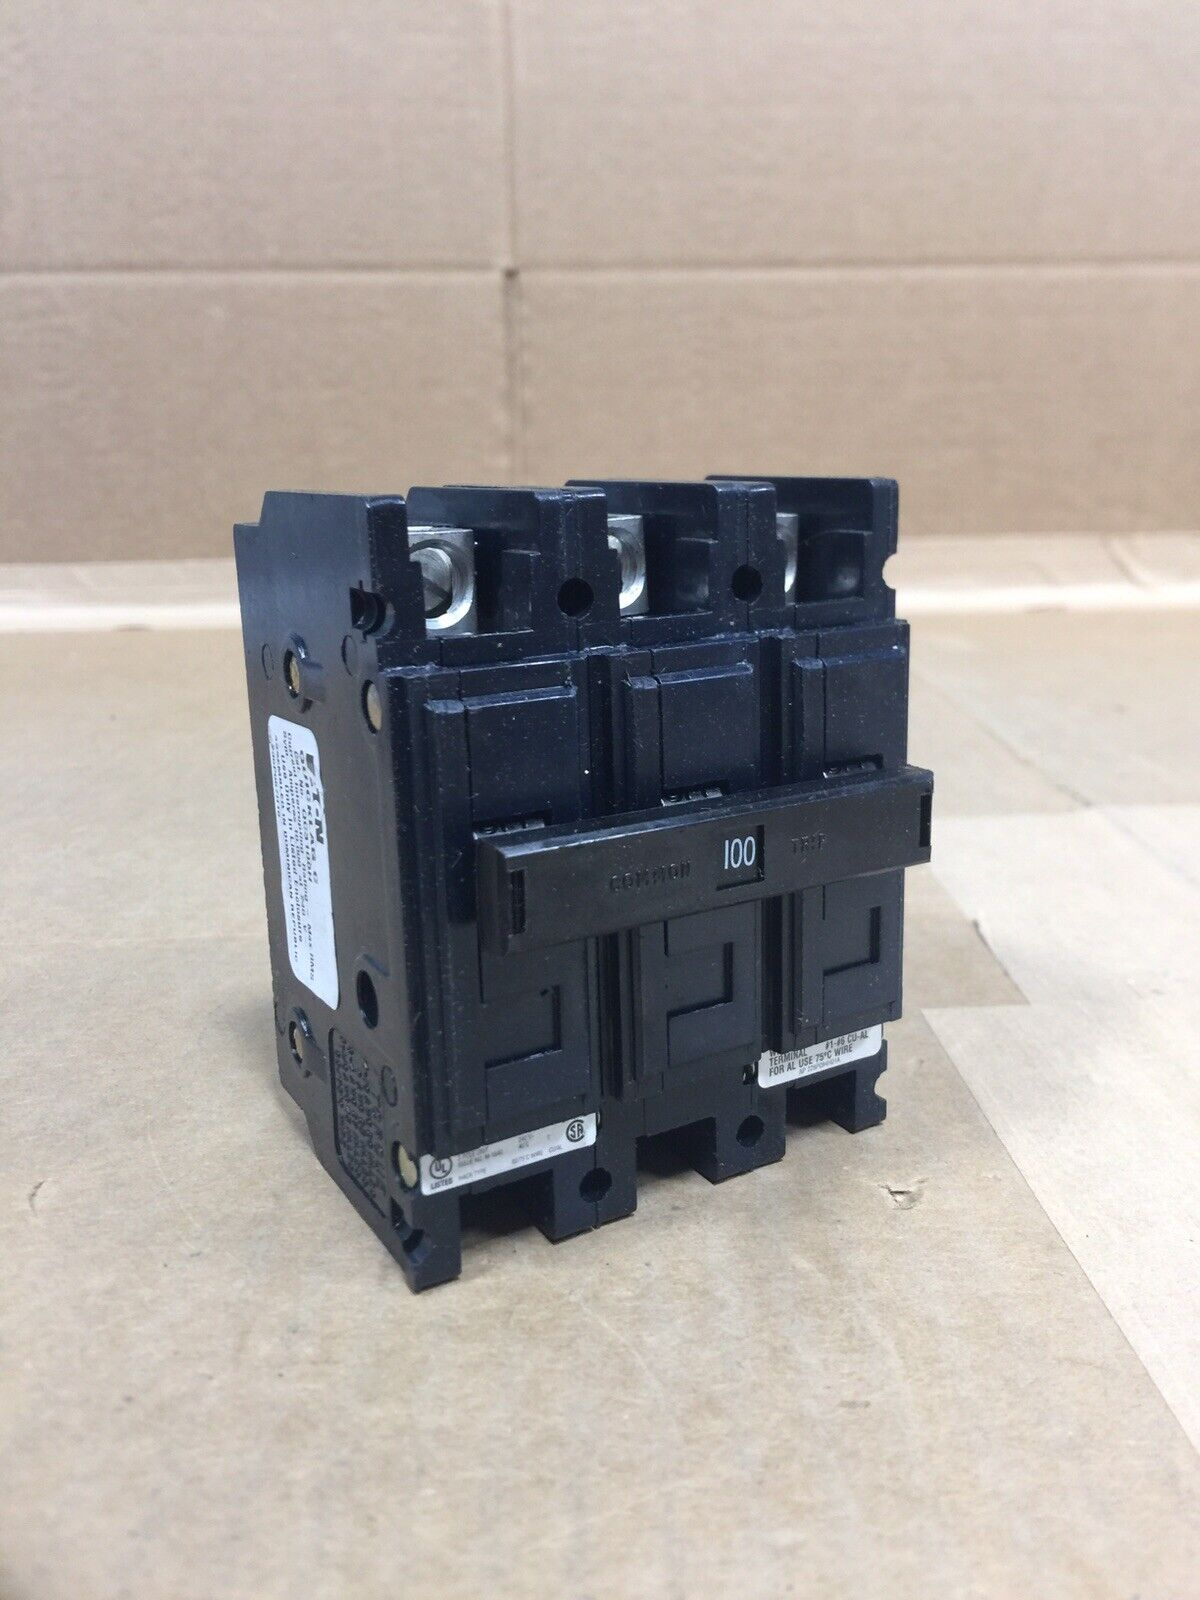 Cutler-Hammer QC3100H Industrial Control System for sale online